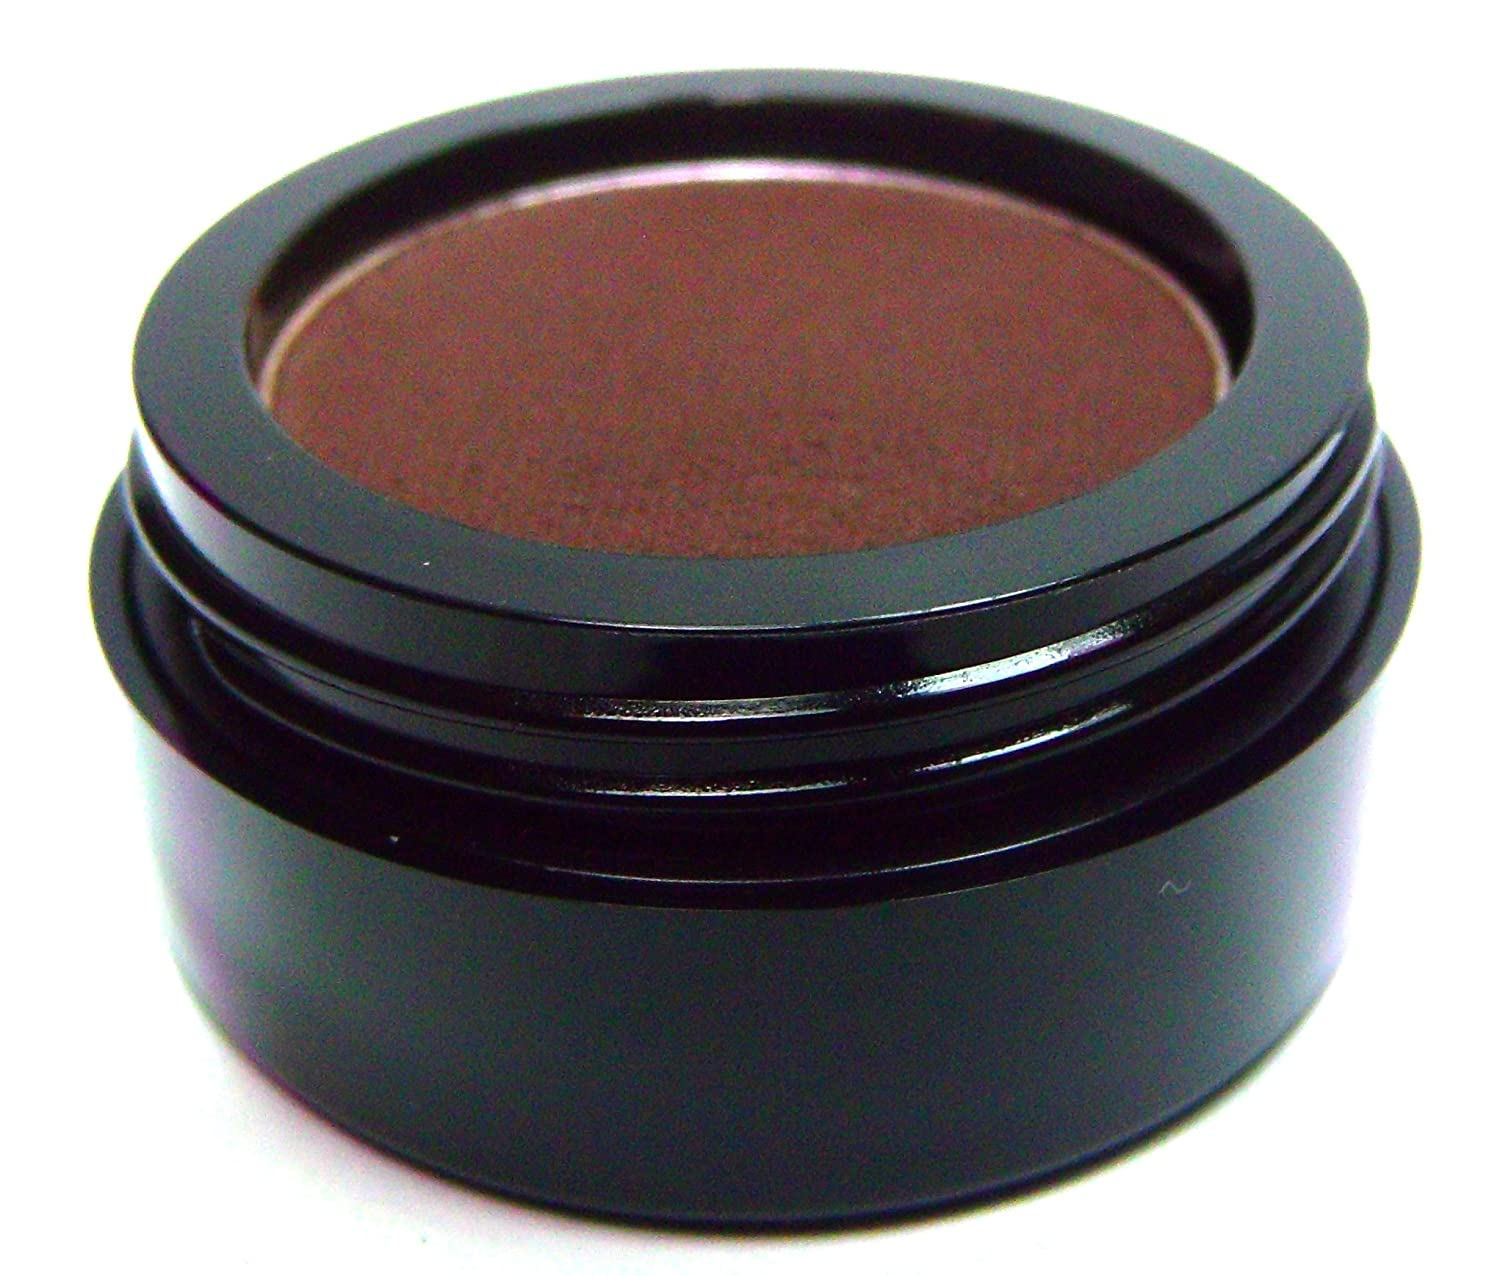 THE ORIGINAL Pure Reservation Ziva Matte Chocolate Dry Brown Wet Pre Many popular brands Truffle